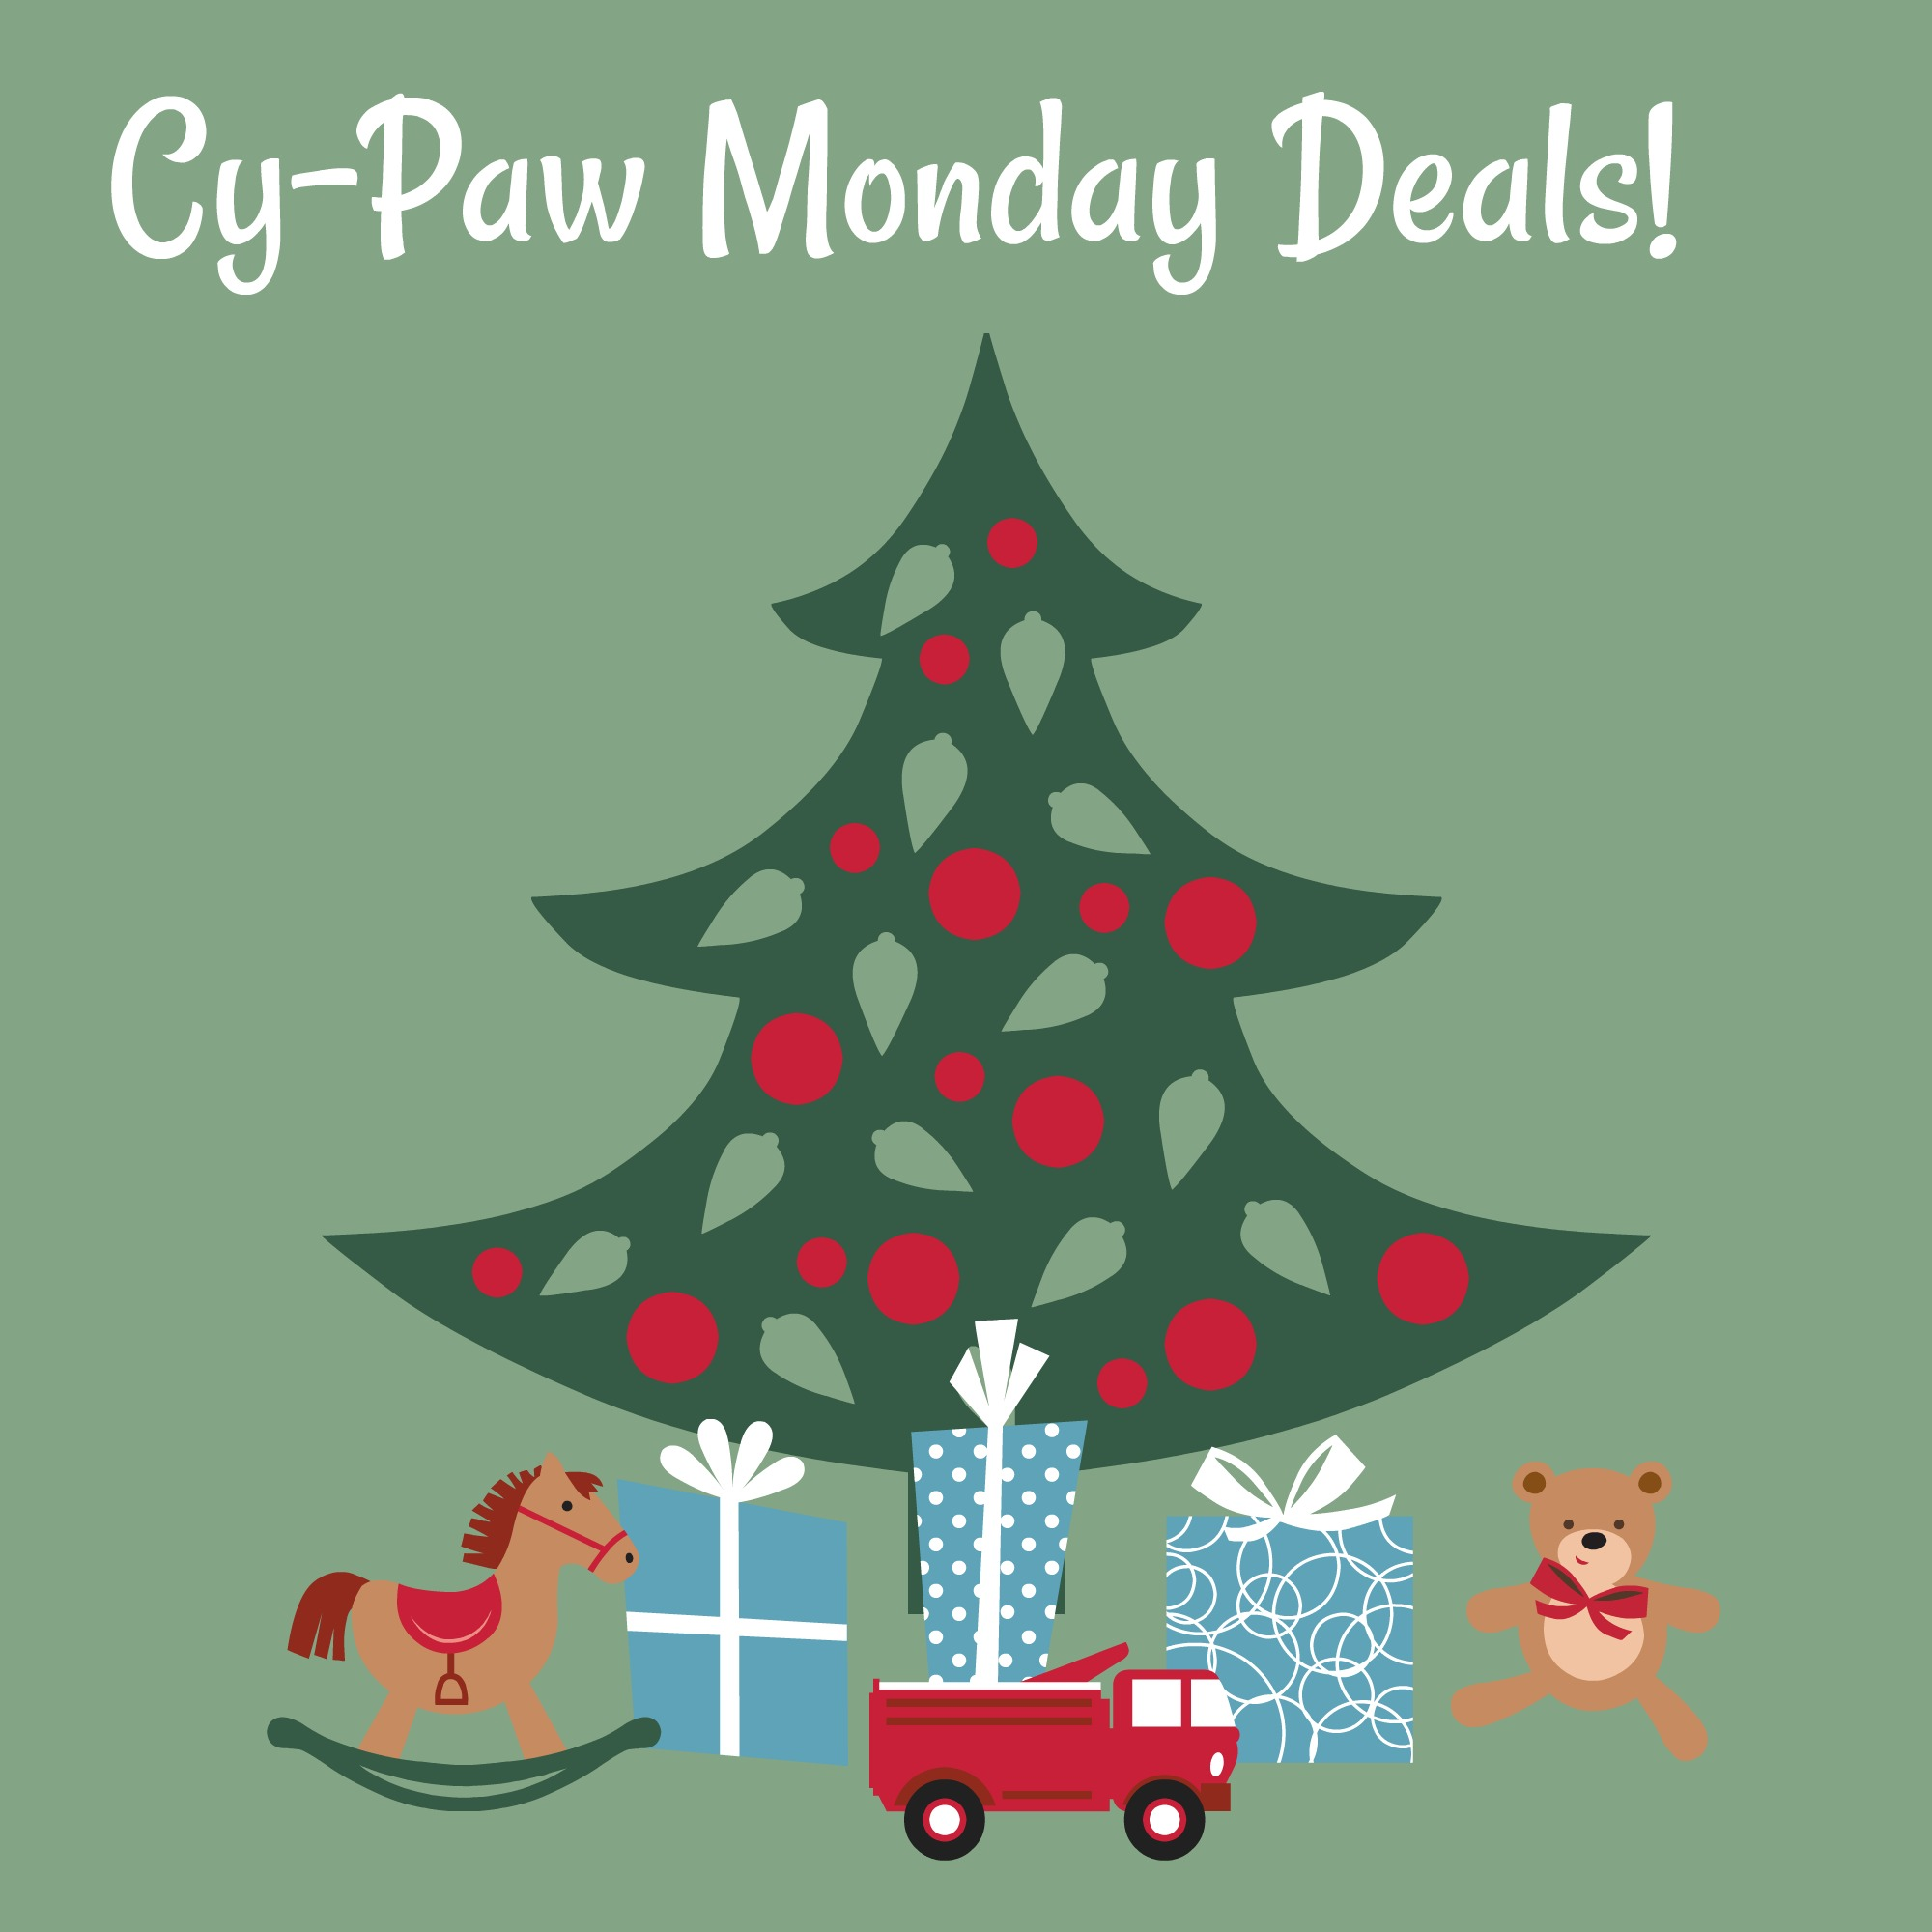 Cy-Paw Monday Deals!